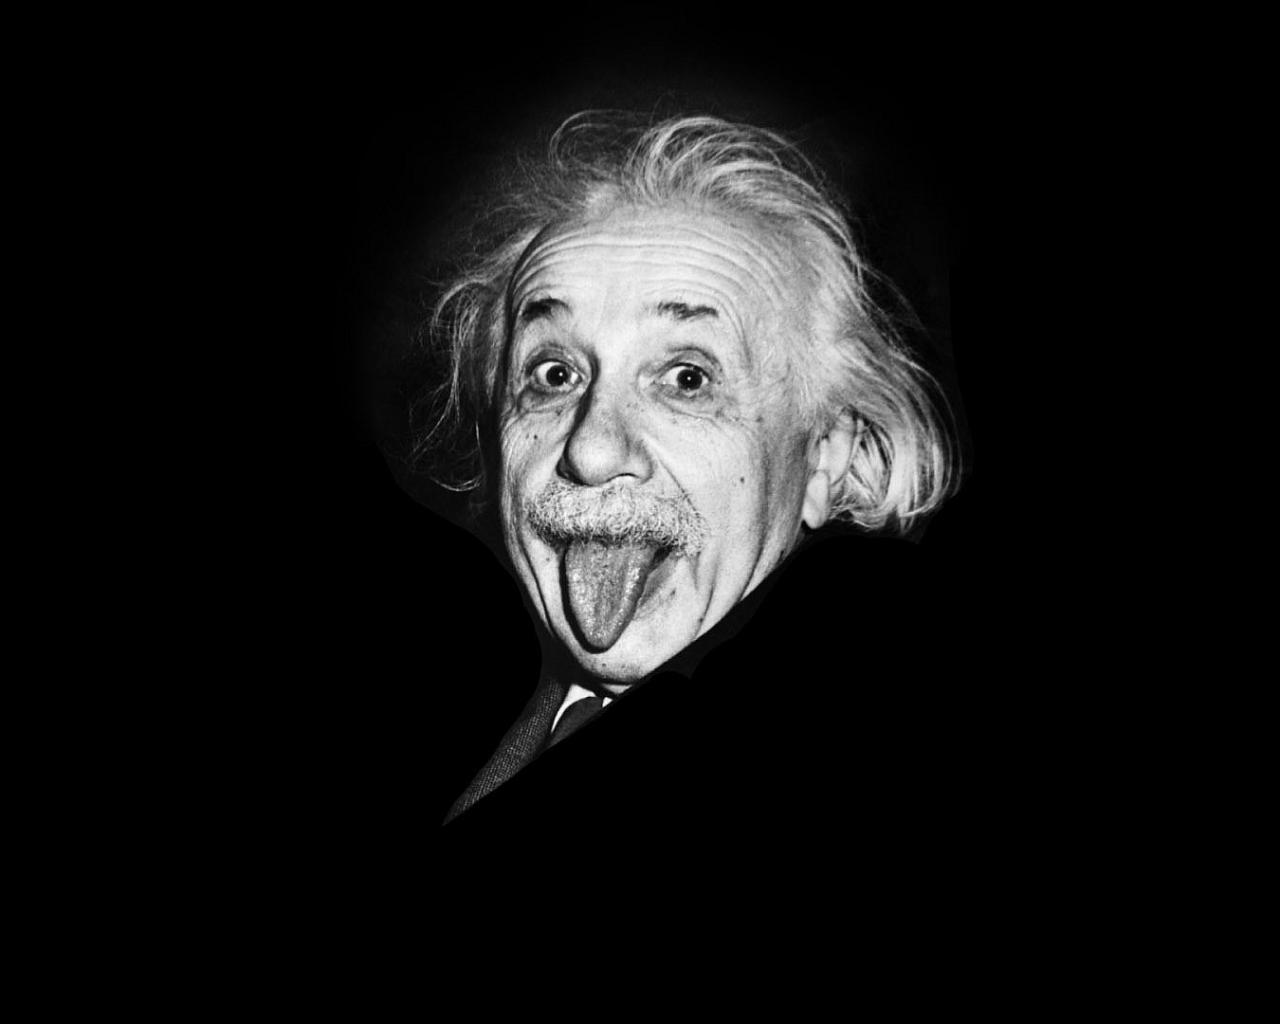 unserious-photos-of-albert-einstein-76391.jpg